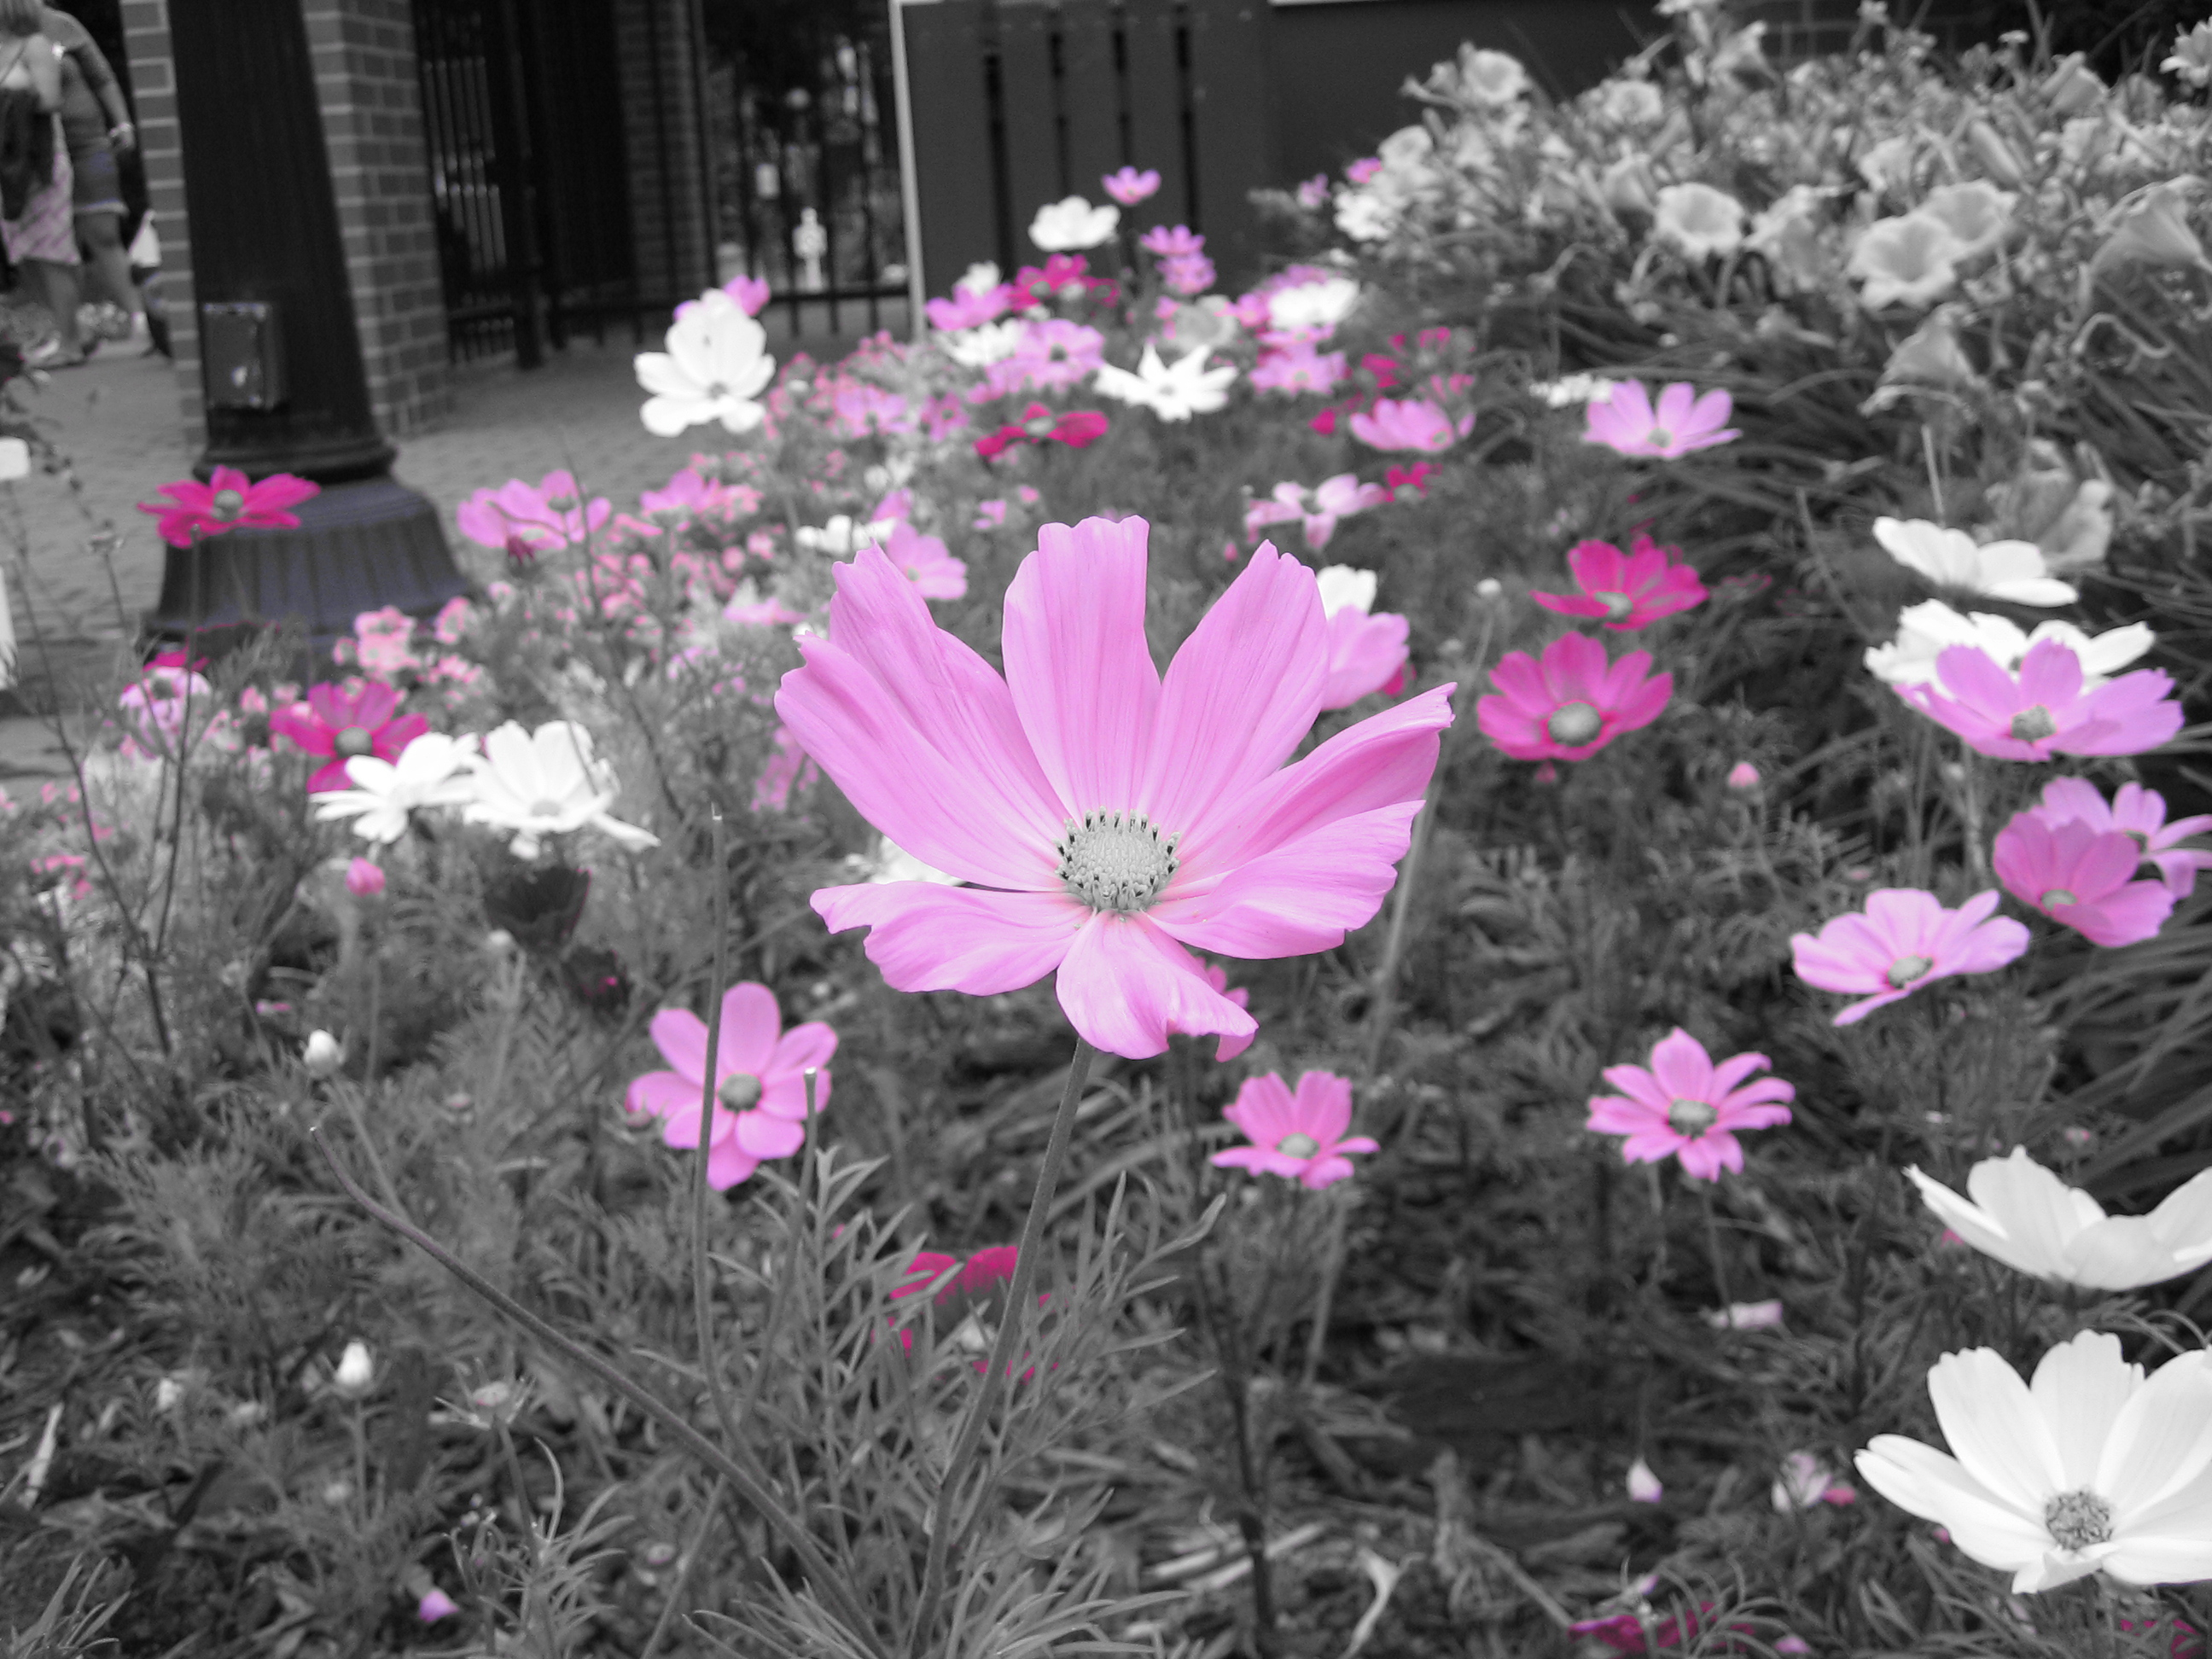 Pink Flowers on Black and White Backgrou, Blackandwhite, Blooming, Bspo06, B&w, HQ Photo